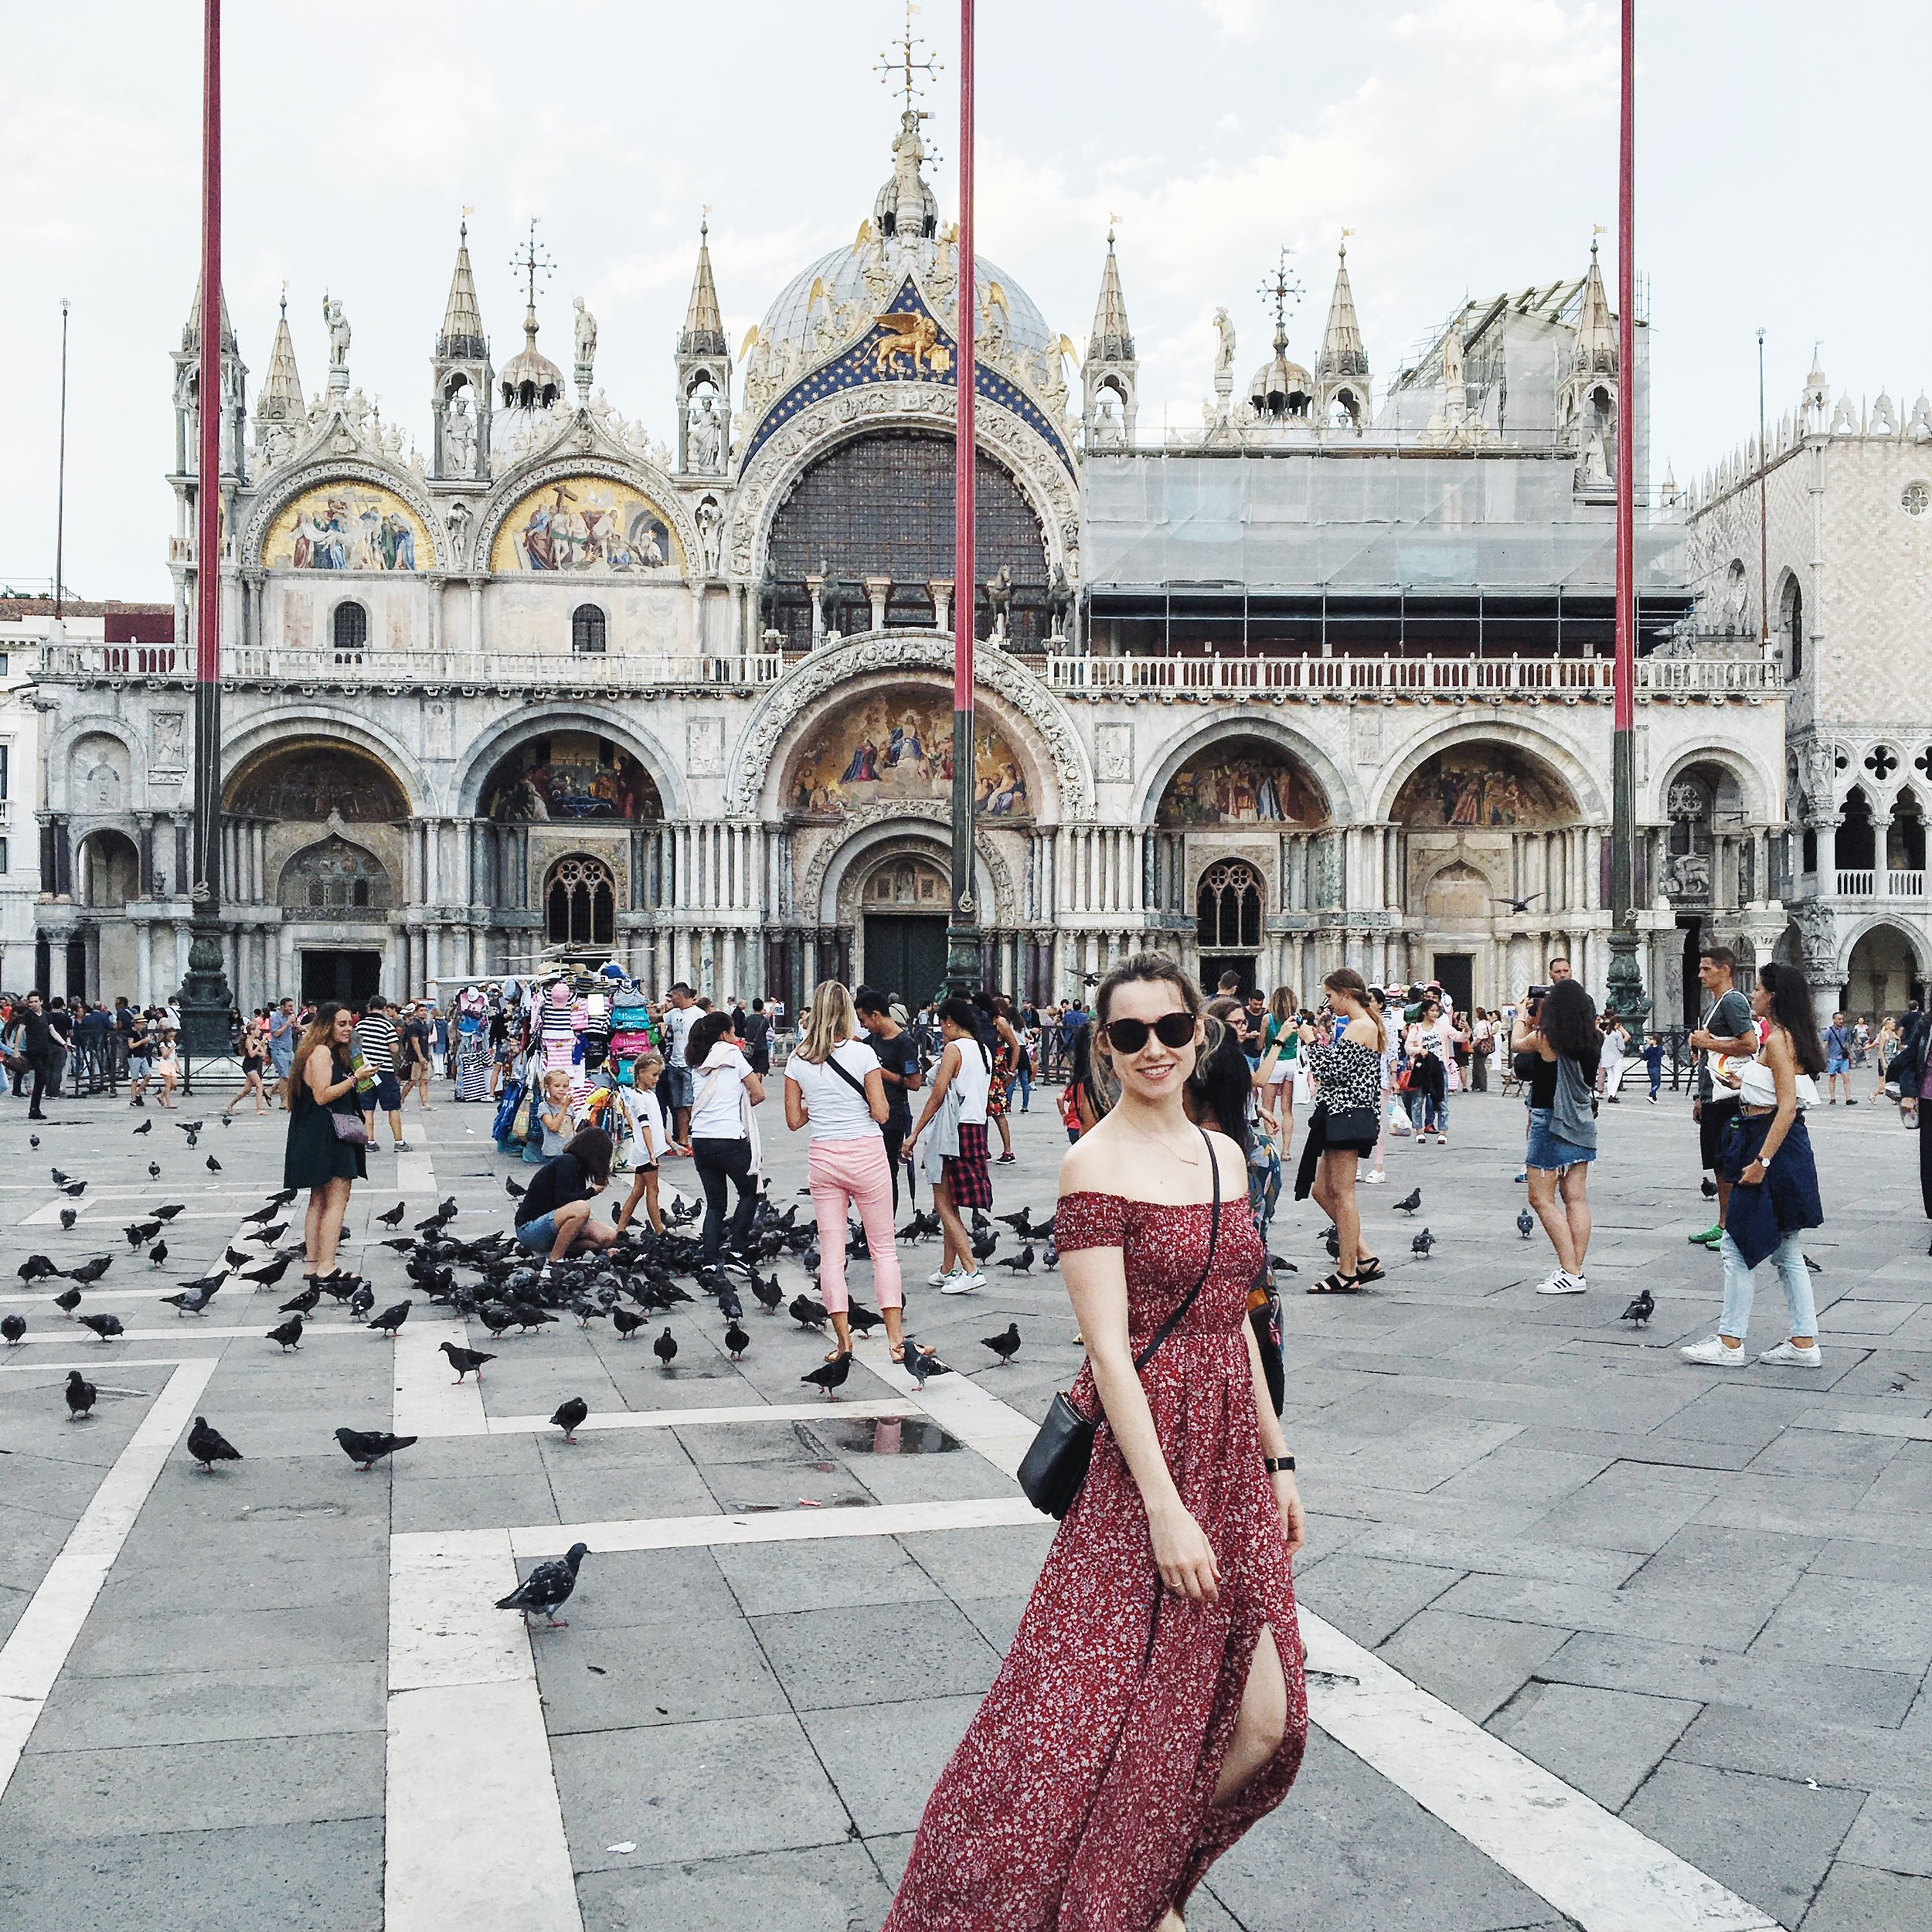 Lost In Love in Venice